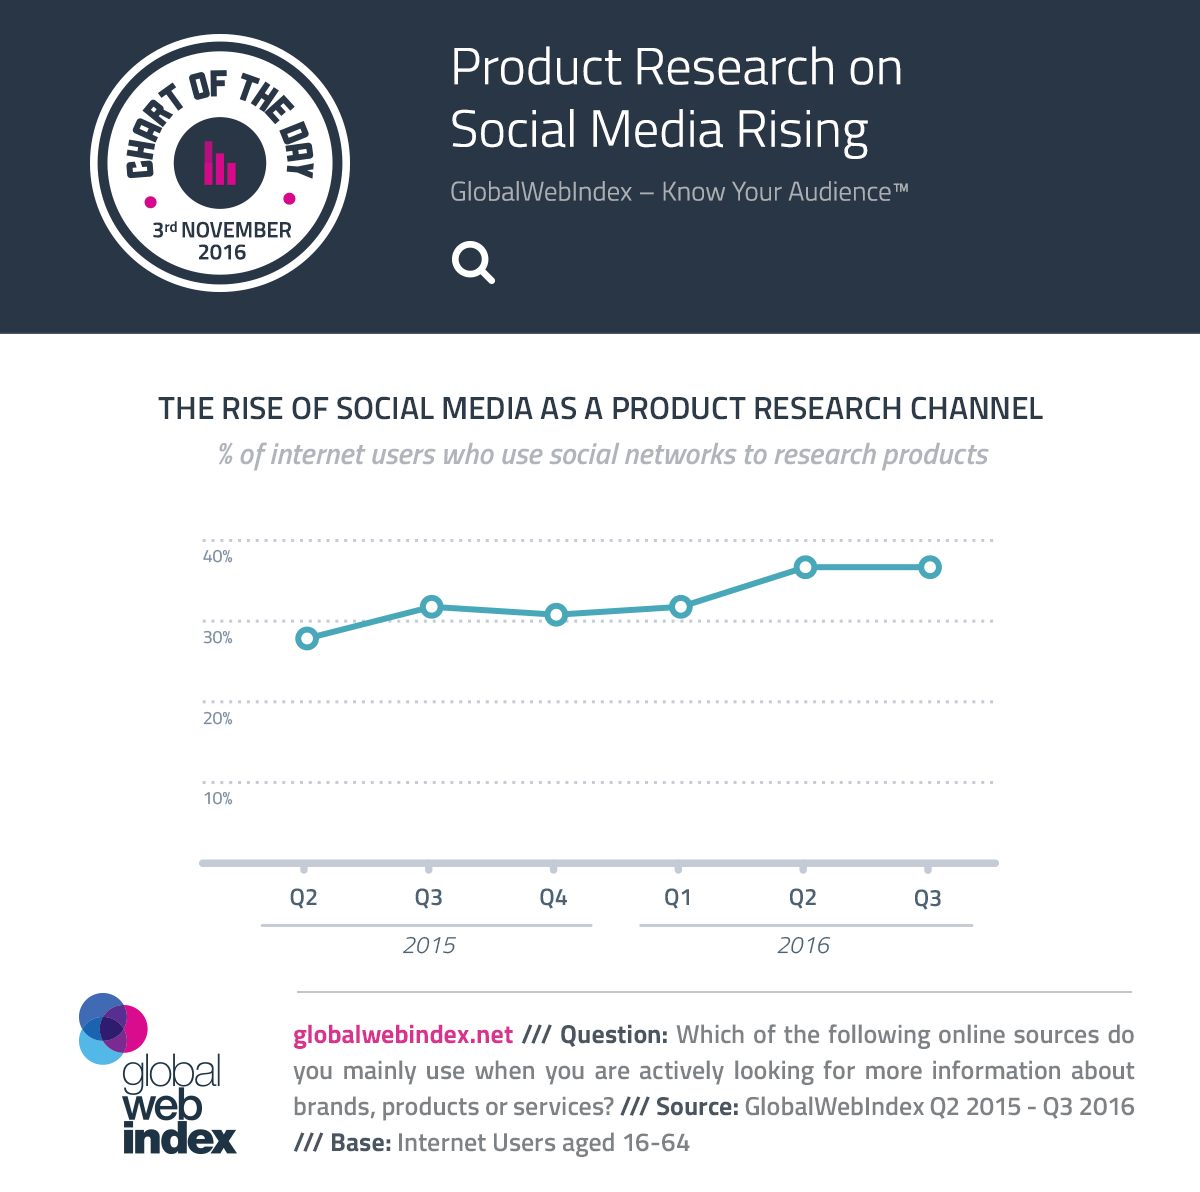 Product Research on Social Media Rising